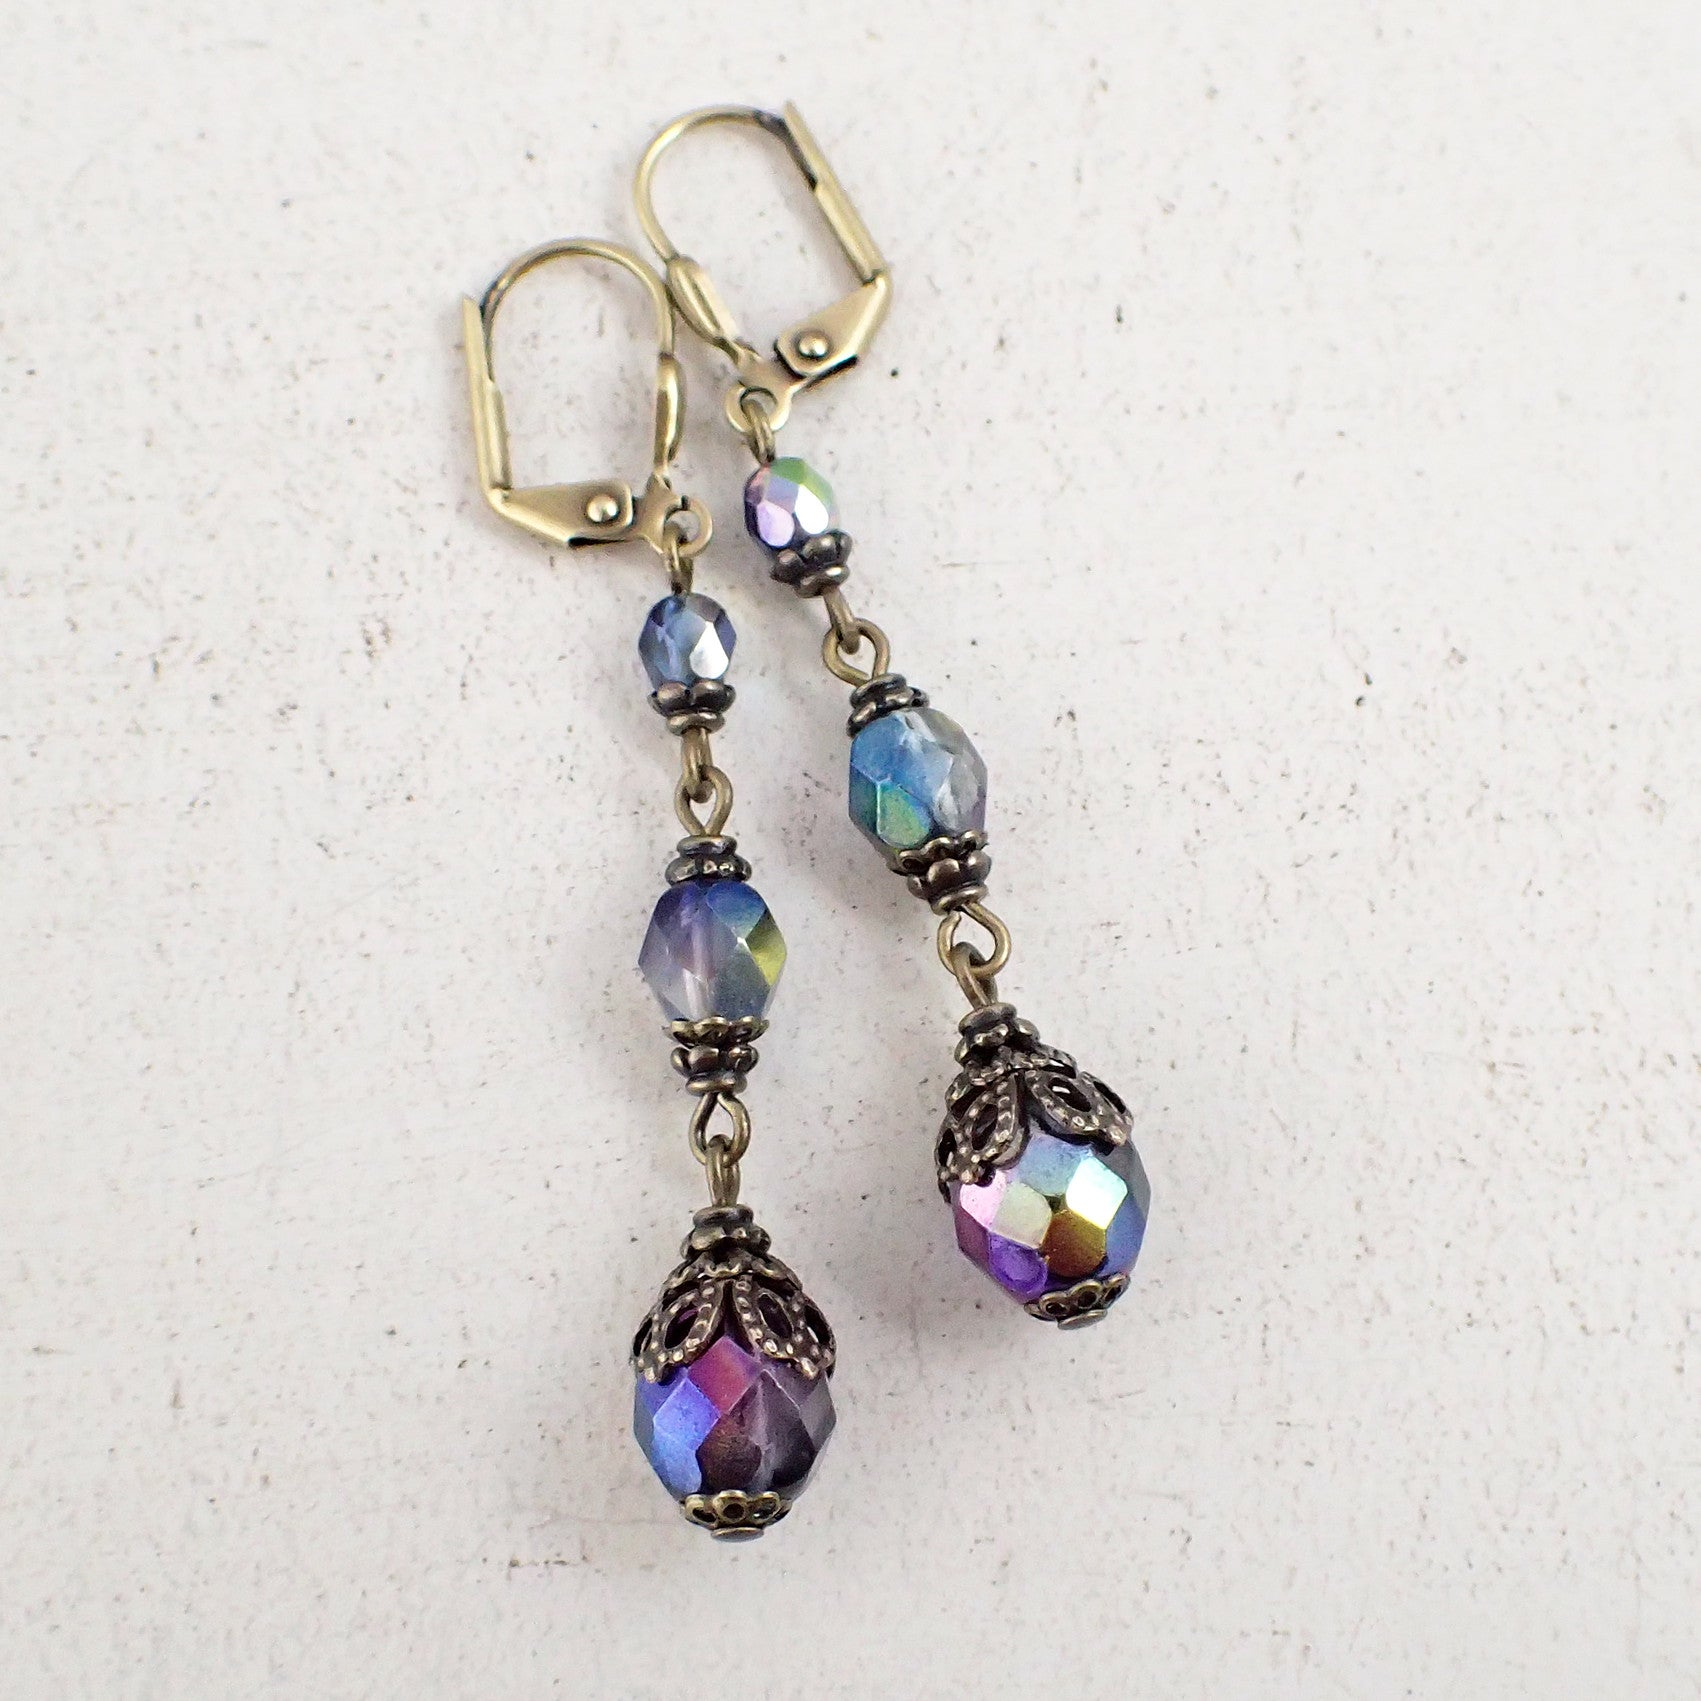 Long Iridescent Antique Style Earrings